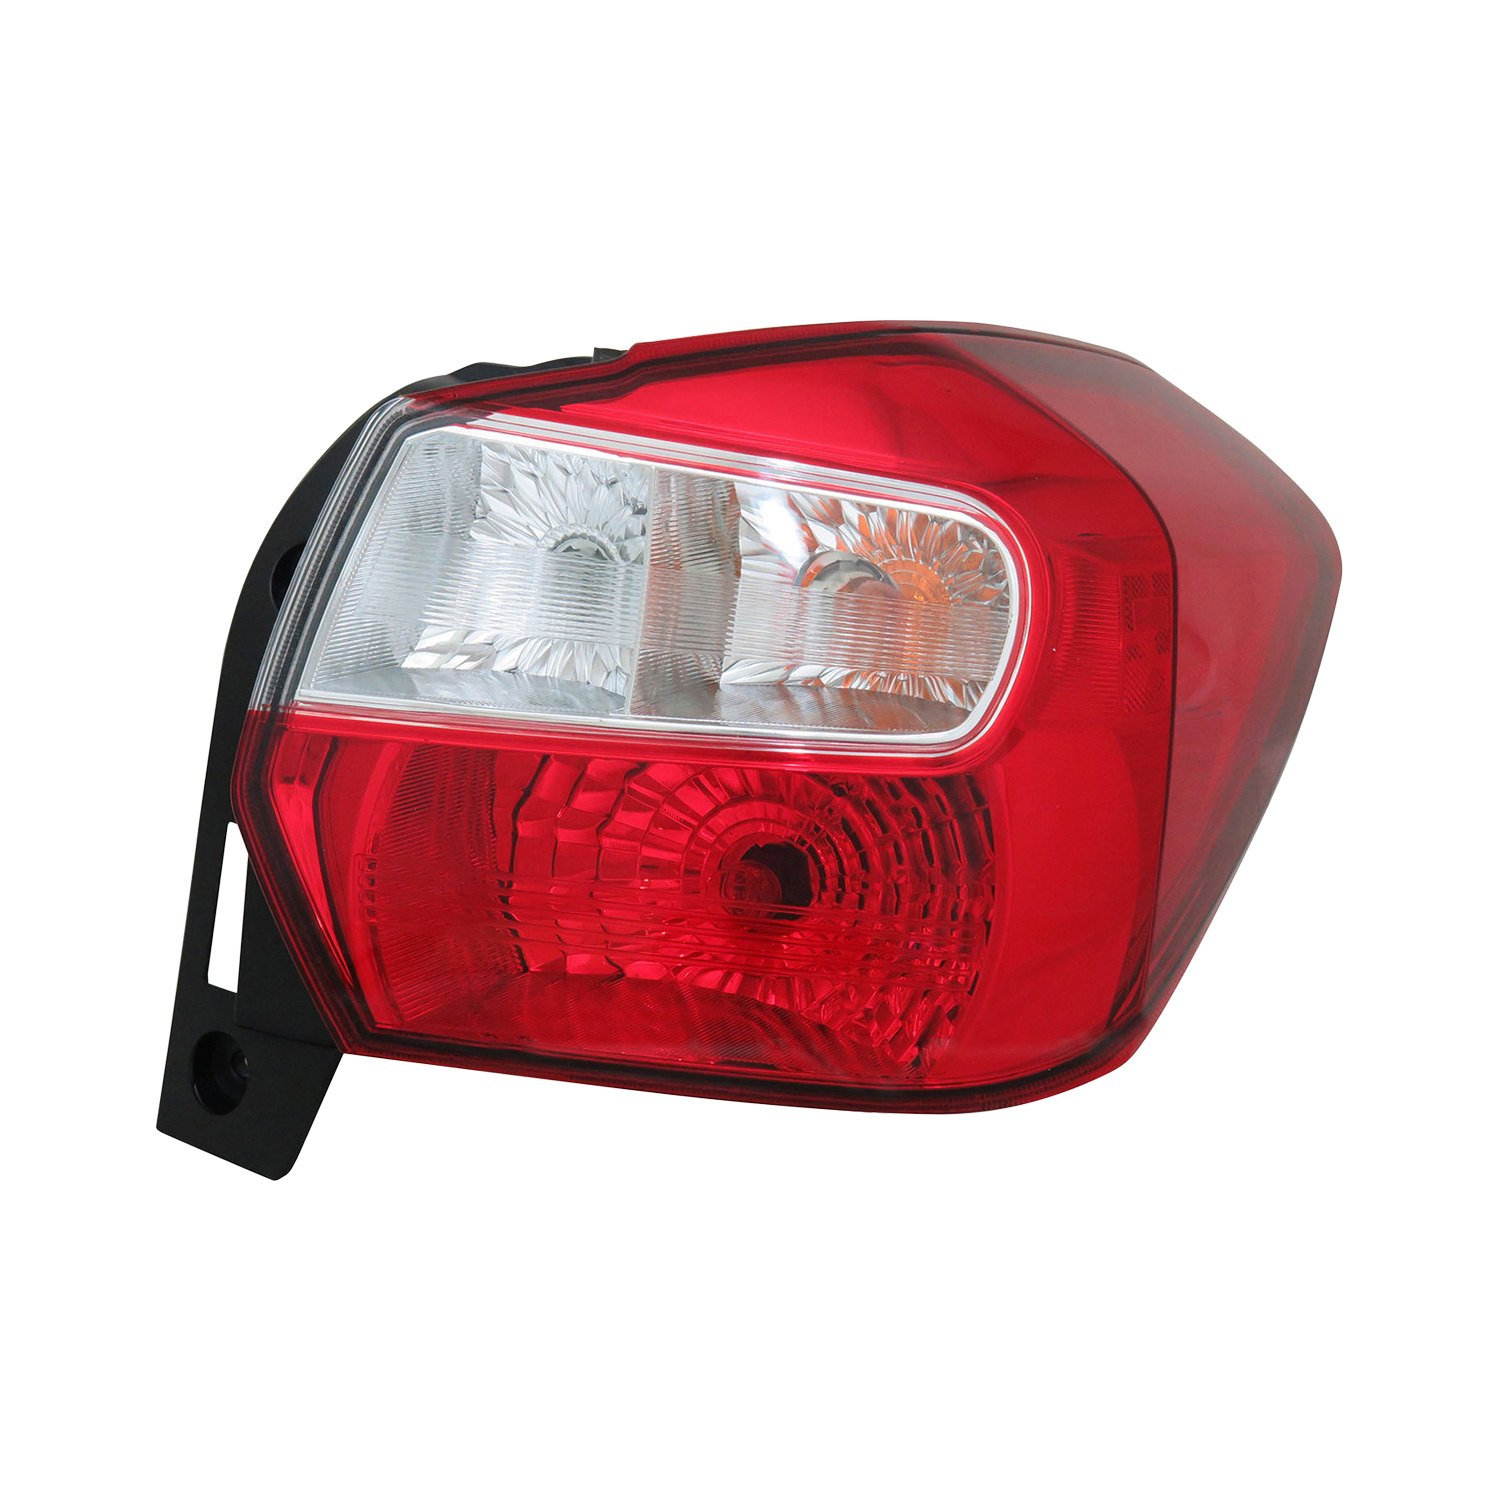 tyc subaru impreza 2014 replacement tail light. Black Bedroom Furniture Sets. Home Design Ideas